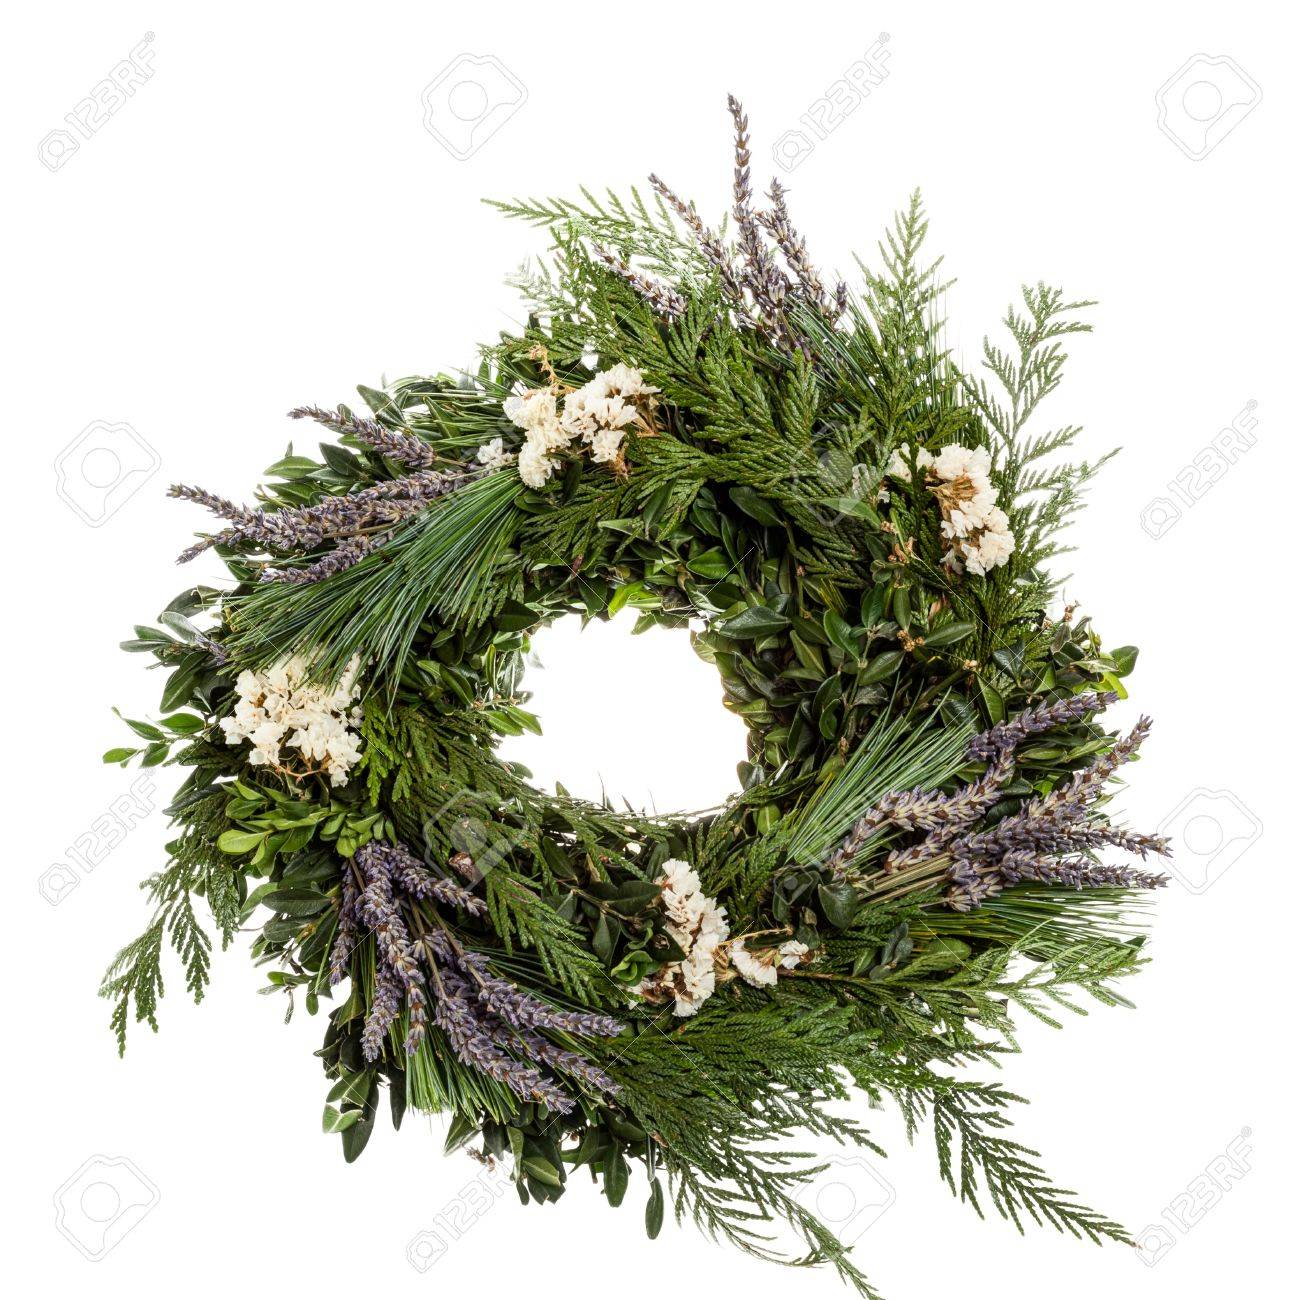 A holiday wreath with greens and lavender flowers Stock Photo - 16882031